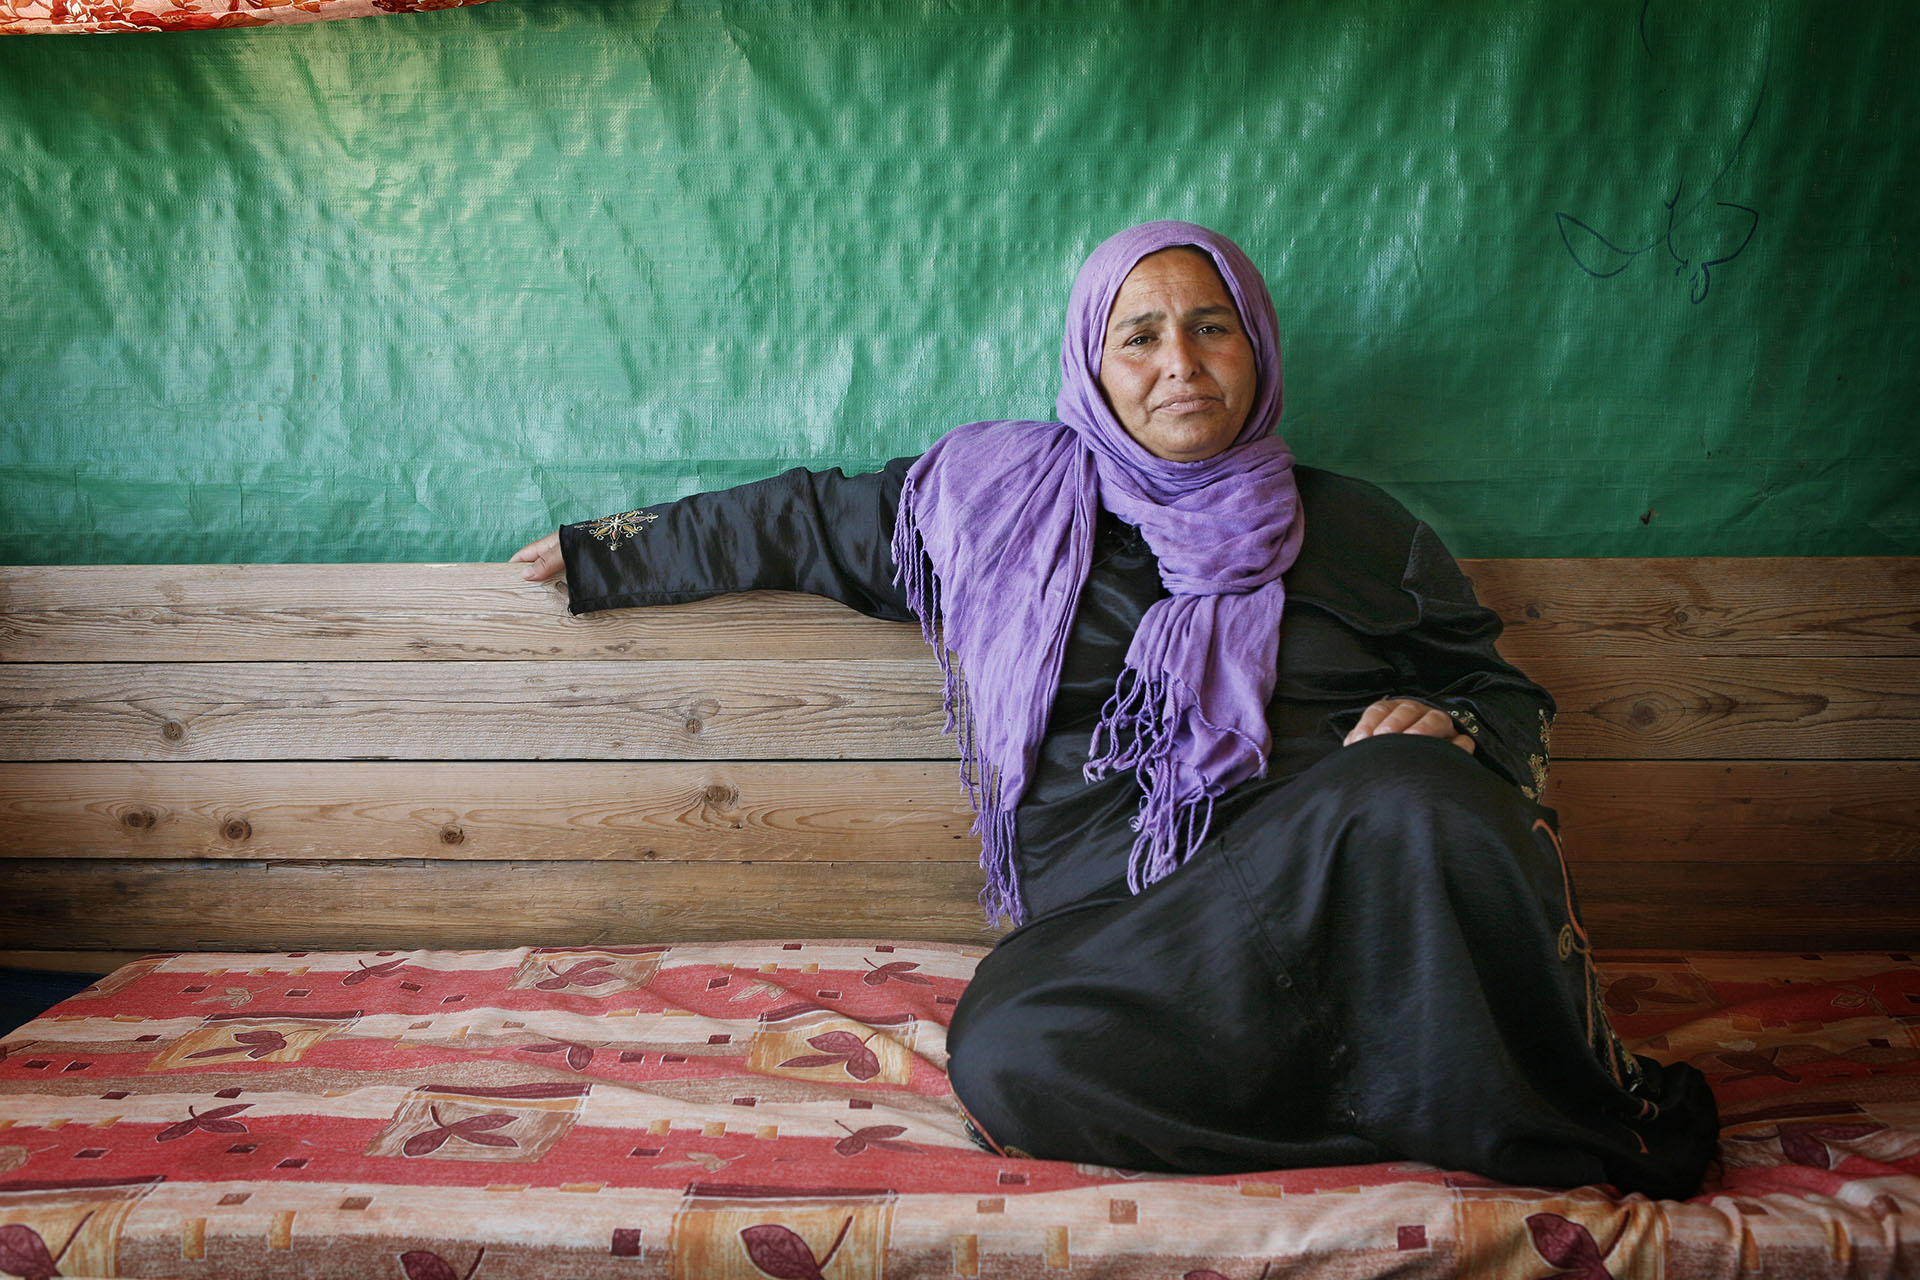 Haqima, in the home she built with her husband and children following the 2010 demolition. Al Araqib July 2012